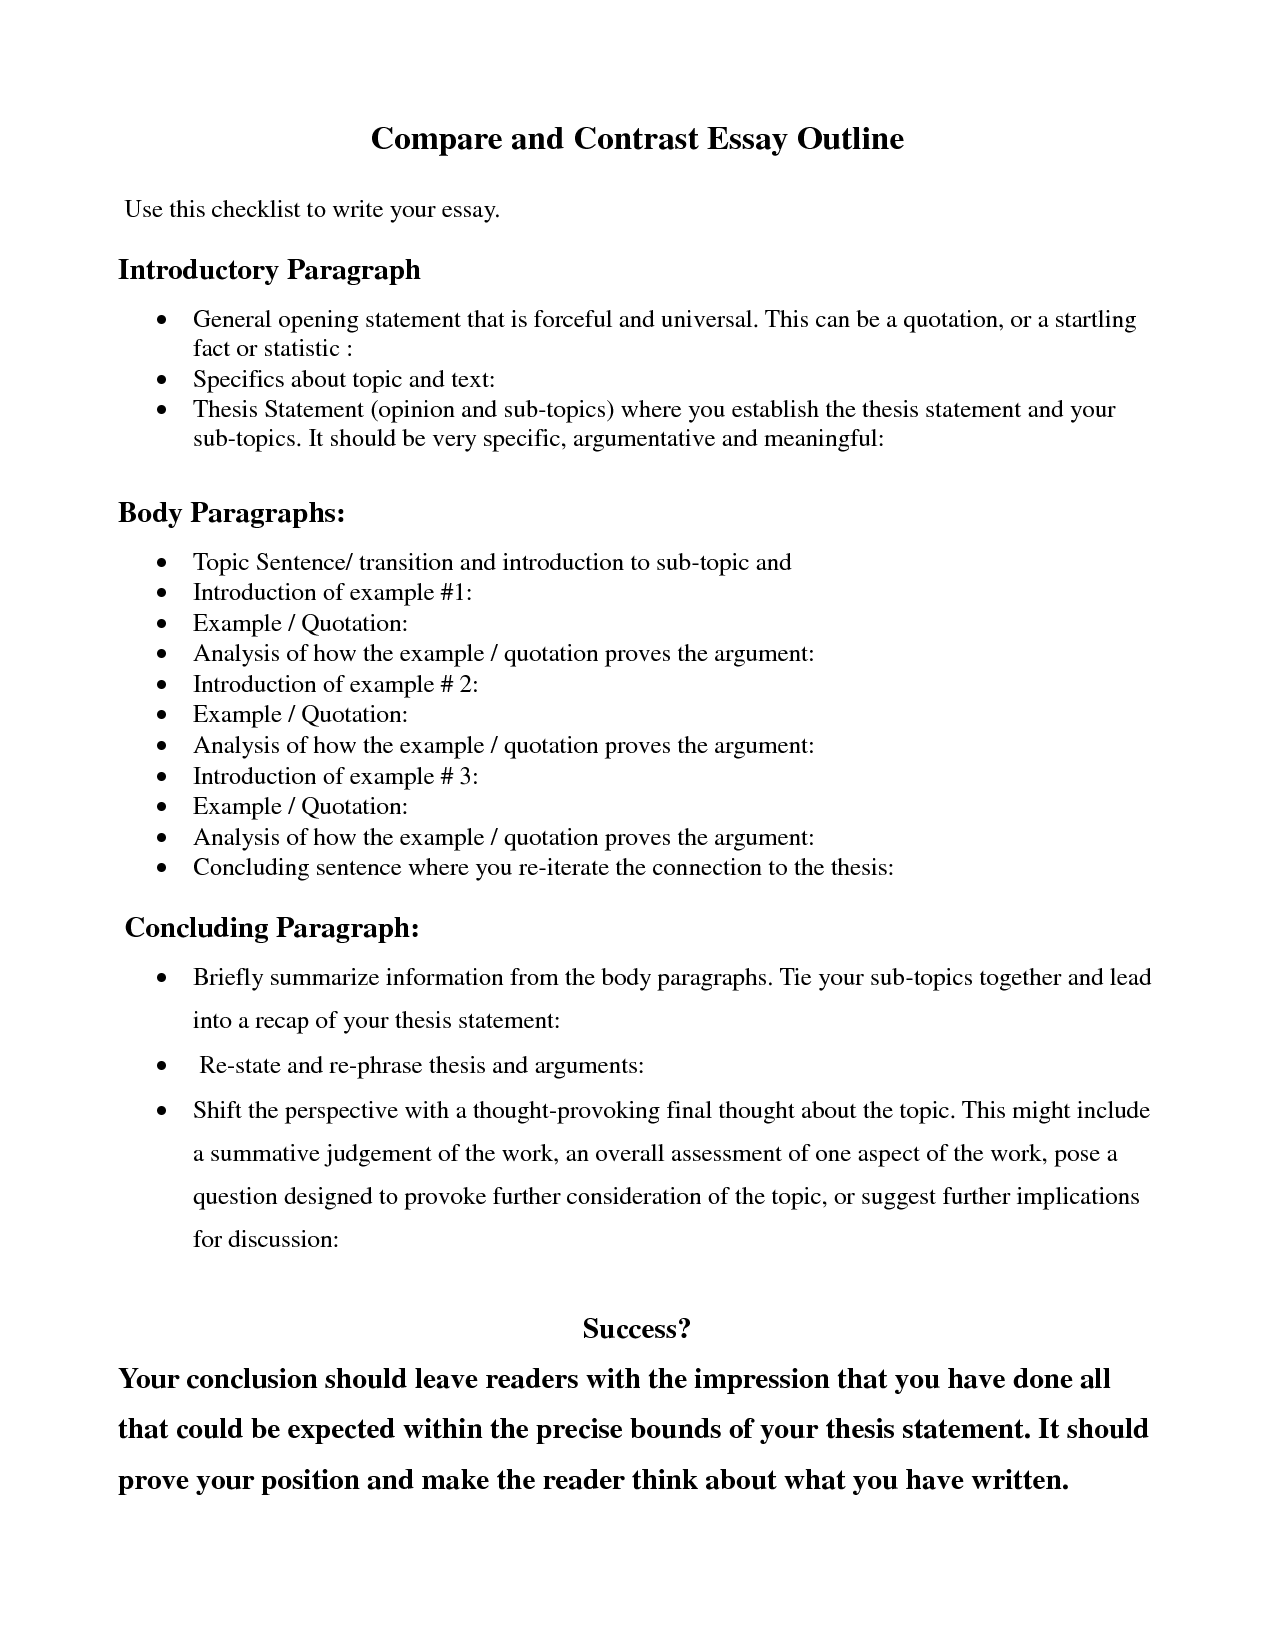 001 Essay Example Comparison And Awful Contrast Topics List Thesis Statement Compare Means Full